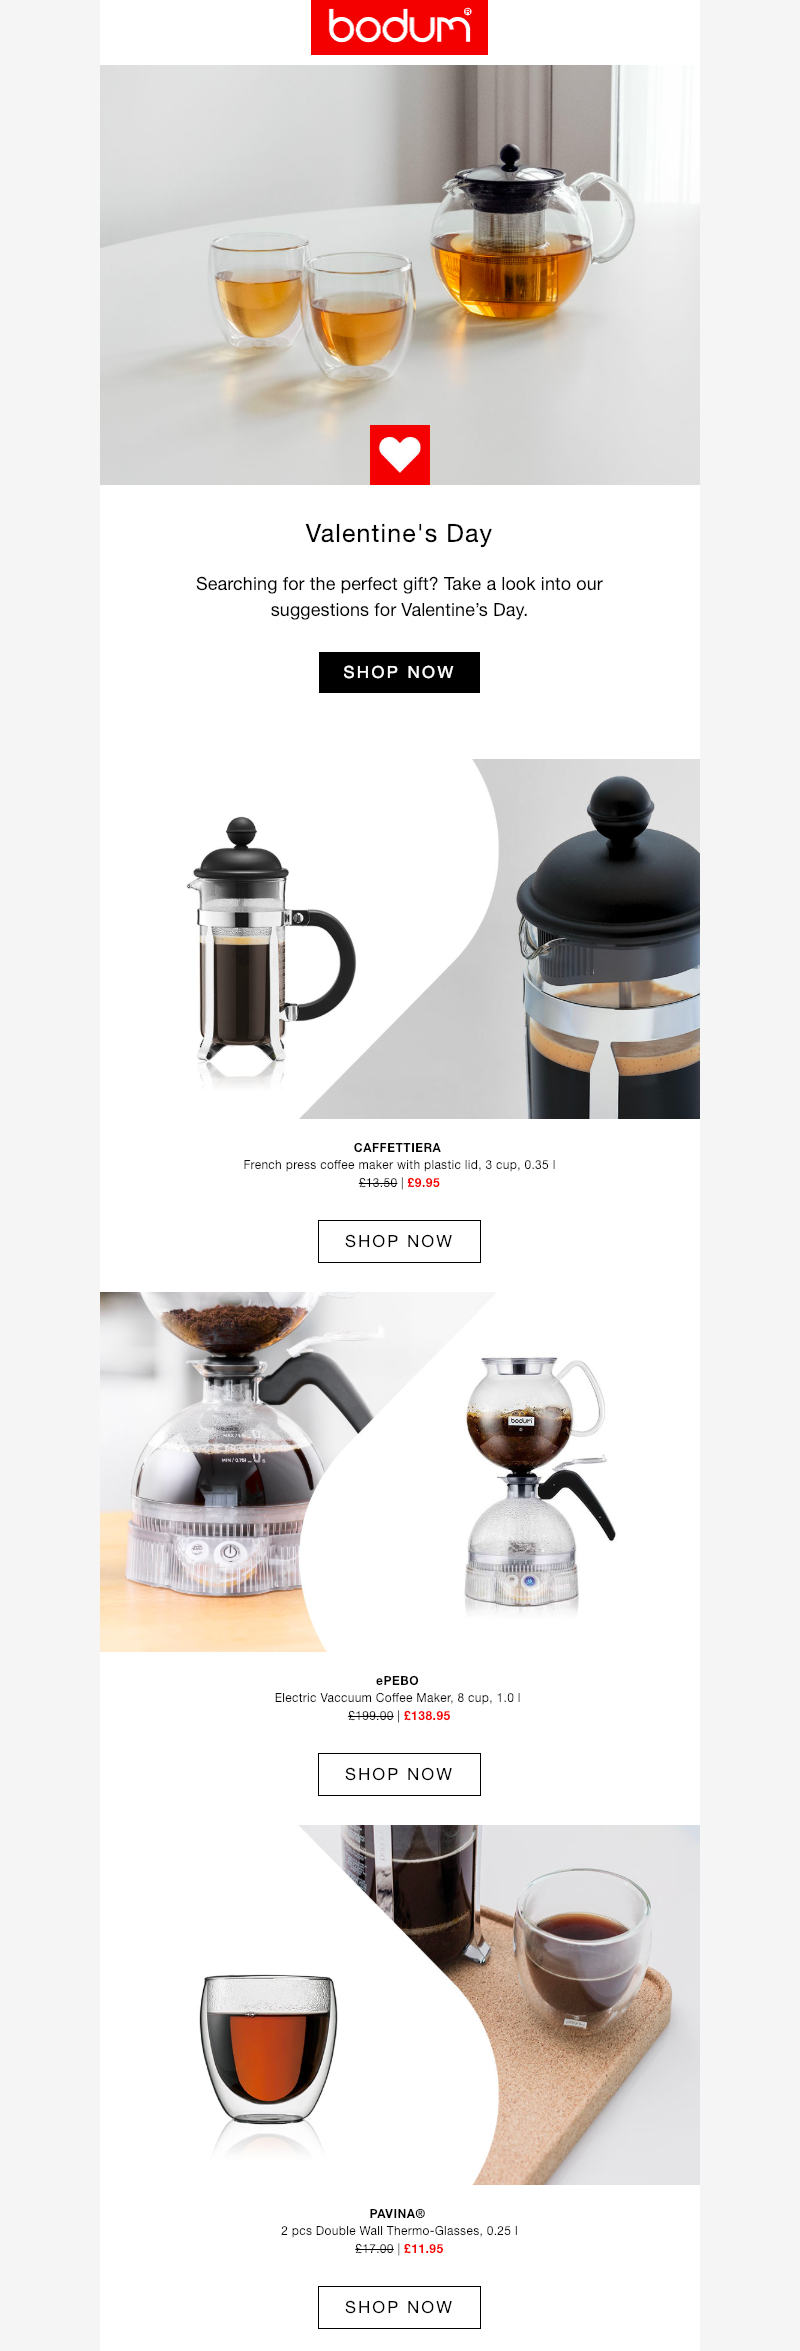 bodum valentine's day email campaign